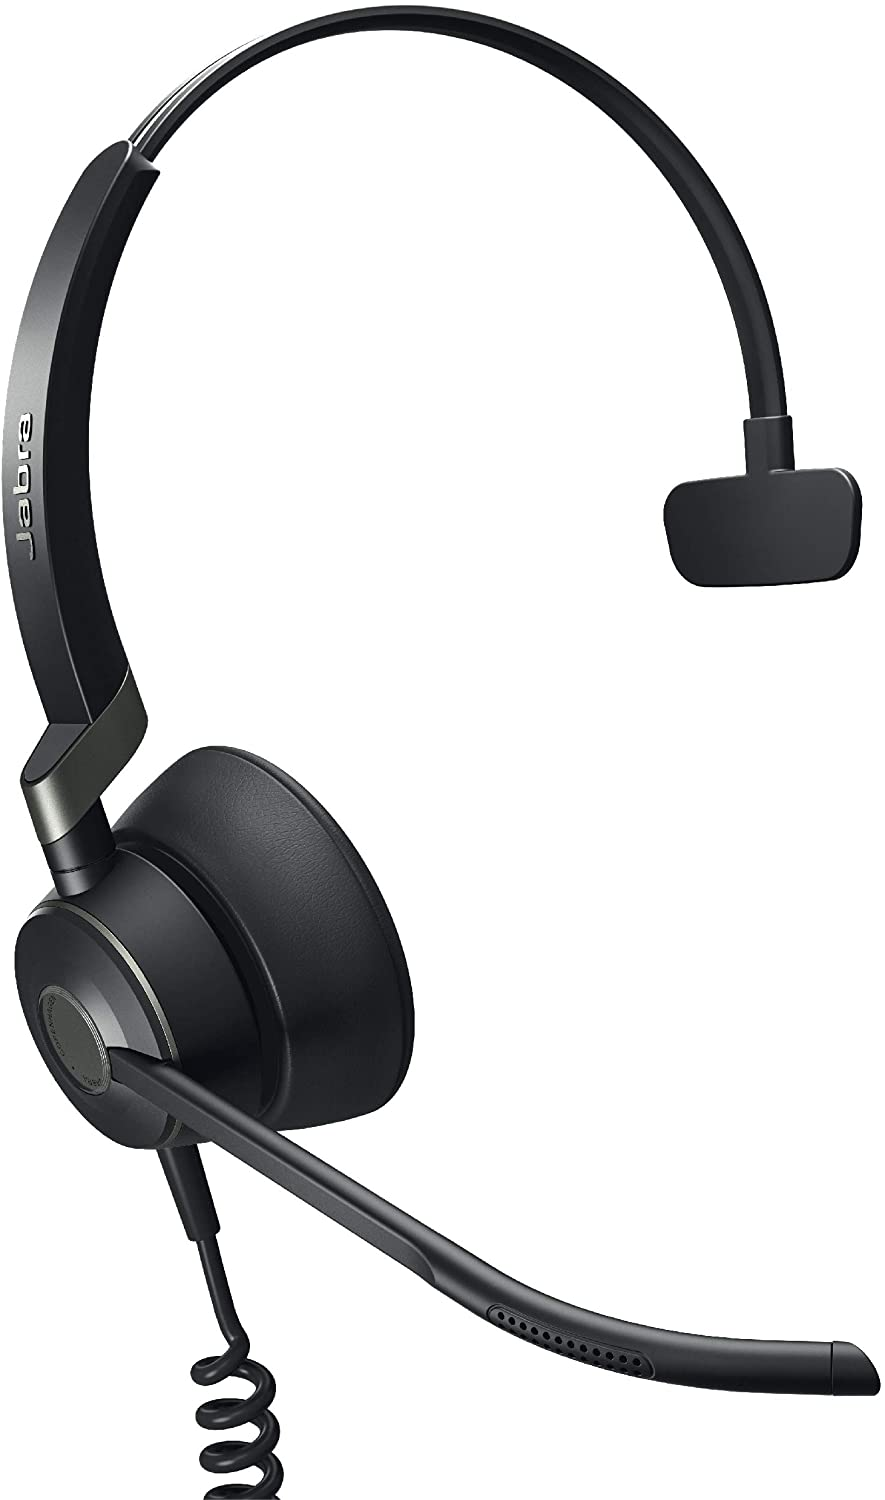 Jabra Engage 50 Wired Headset, Mono – Telephone Headset with 3-Microphone System, Blocks Out Background Noise for Increased Agent Focus, Call Center Headset Features Enhanced Hearing Protection